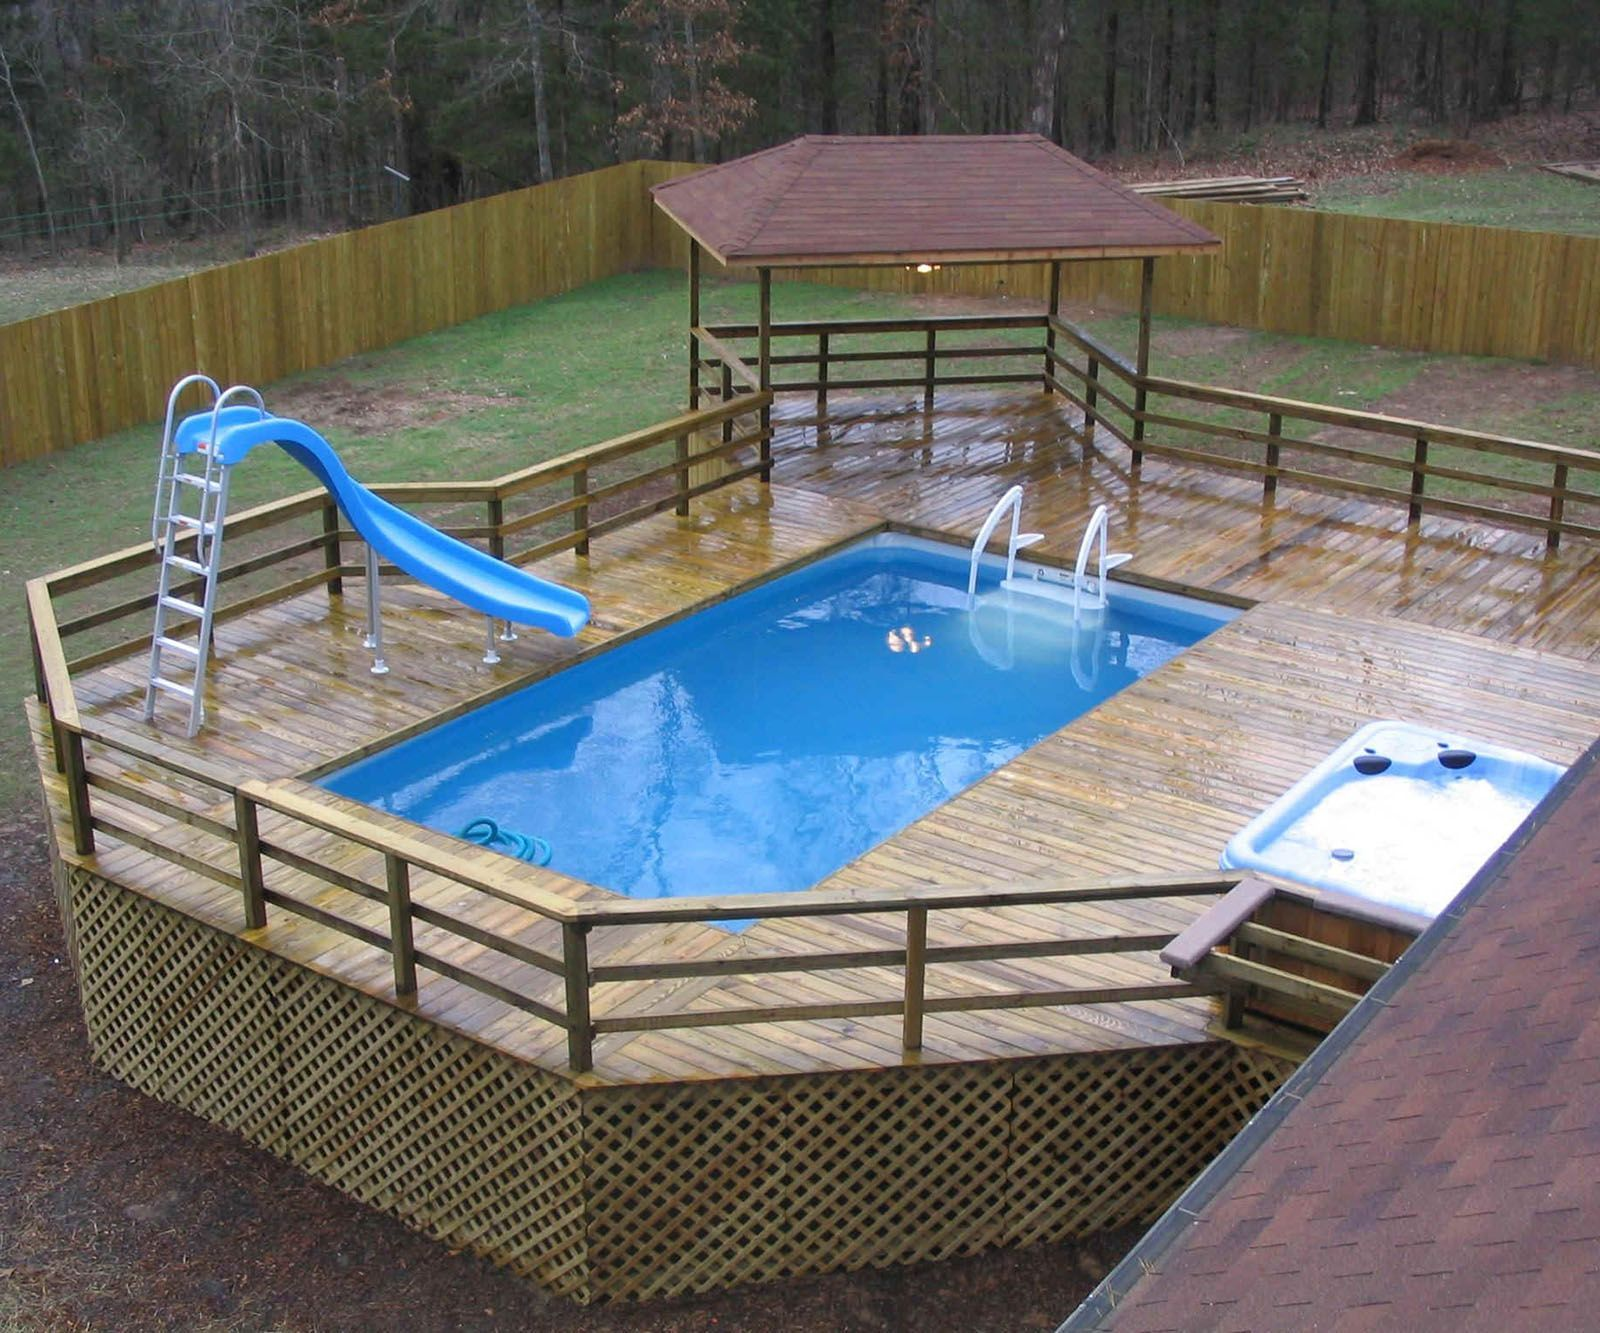 Swiming Pools Above Ground Pool Deck Design With Pool Spa Also Pool Slide And Wooden Fence Besides Pool Deck Plans Swimming Pool Decks Above Ground Pool Slide